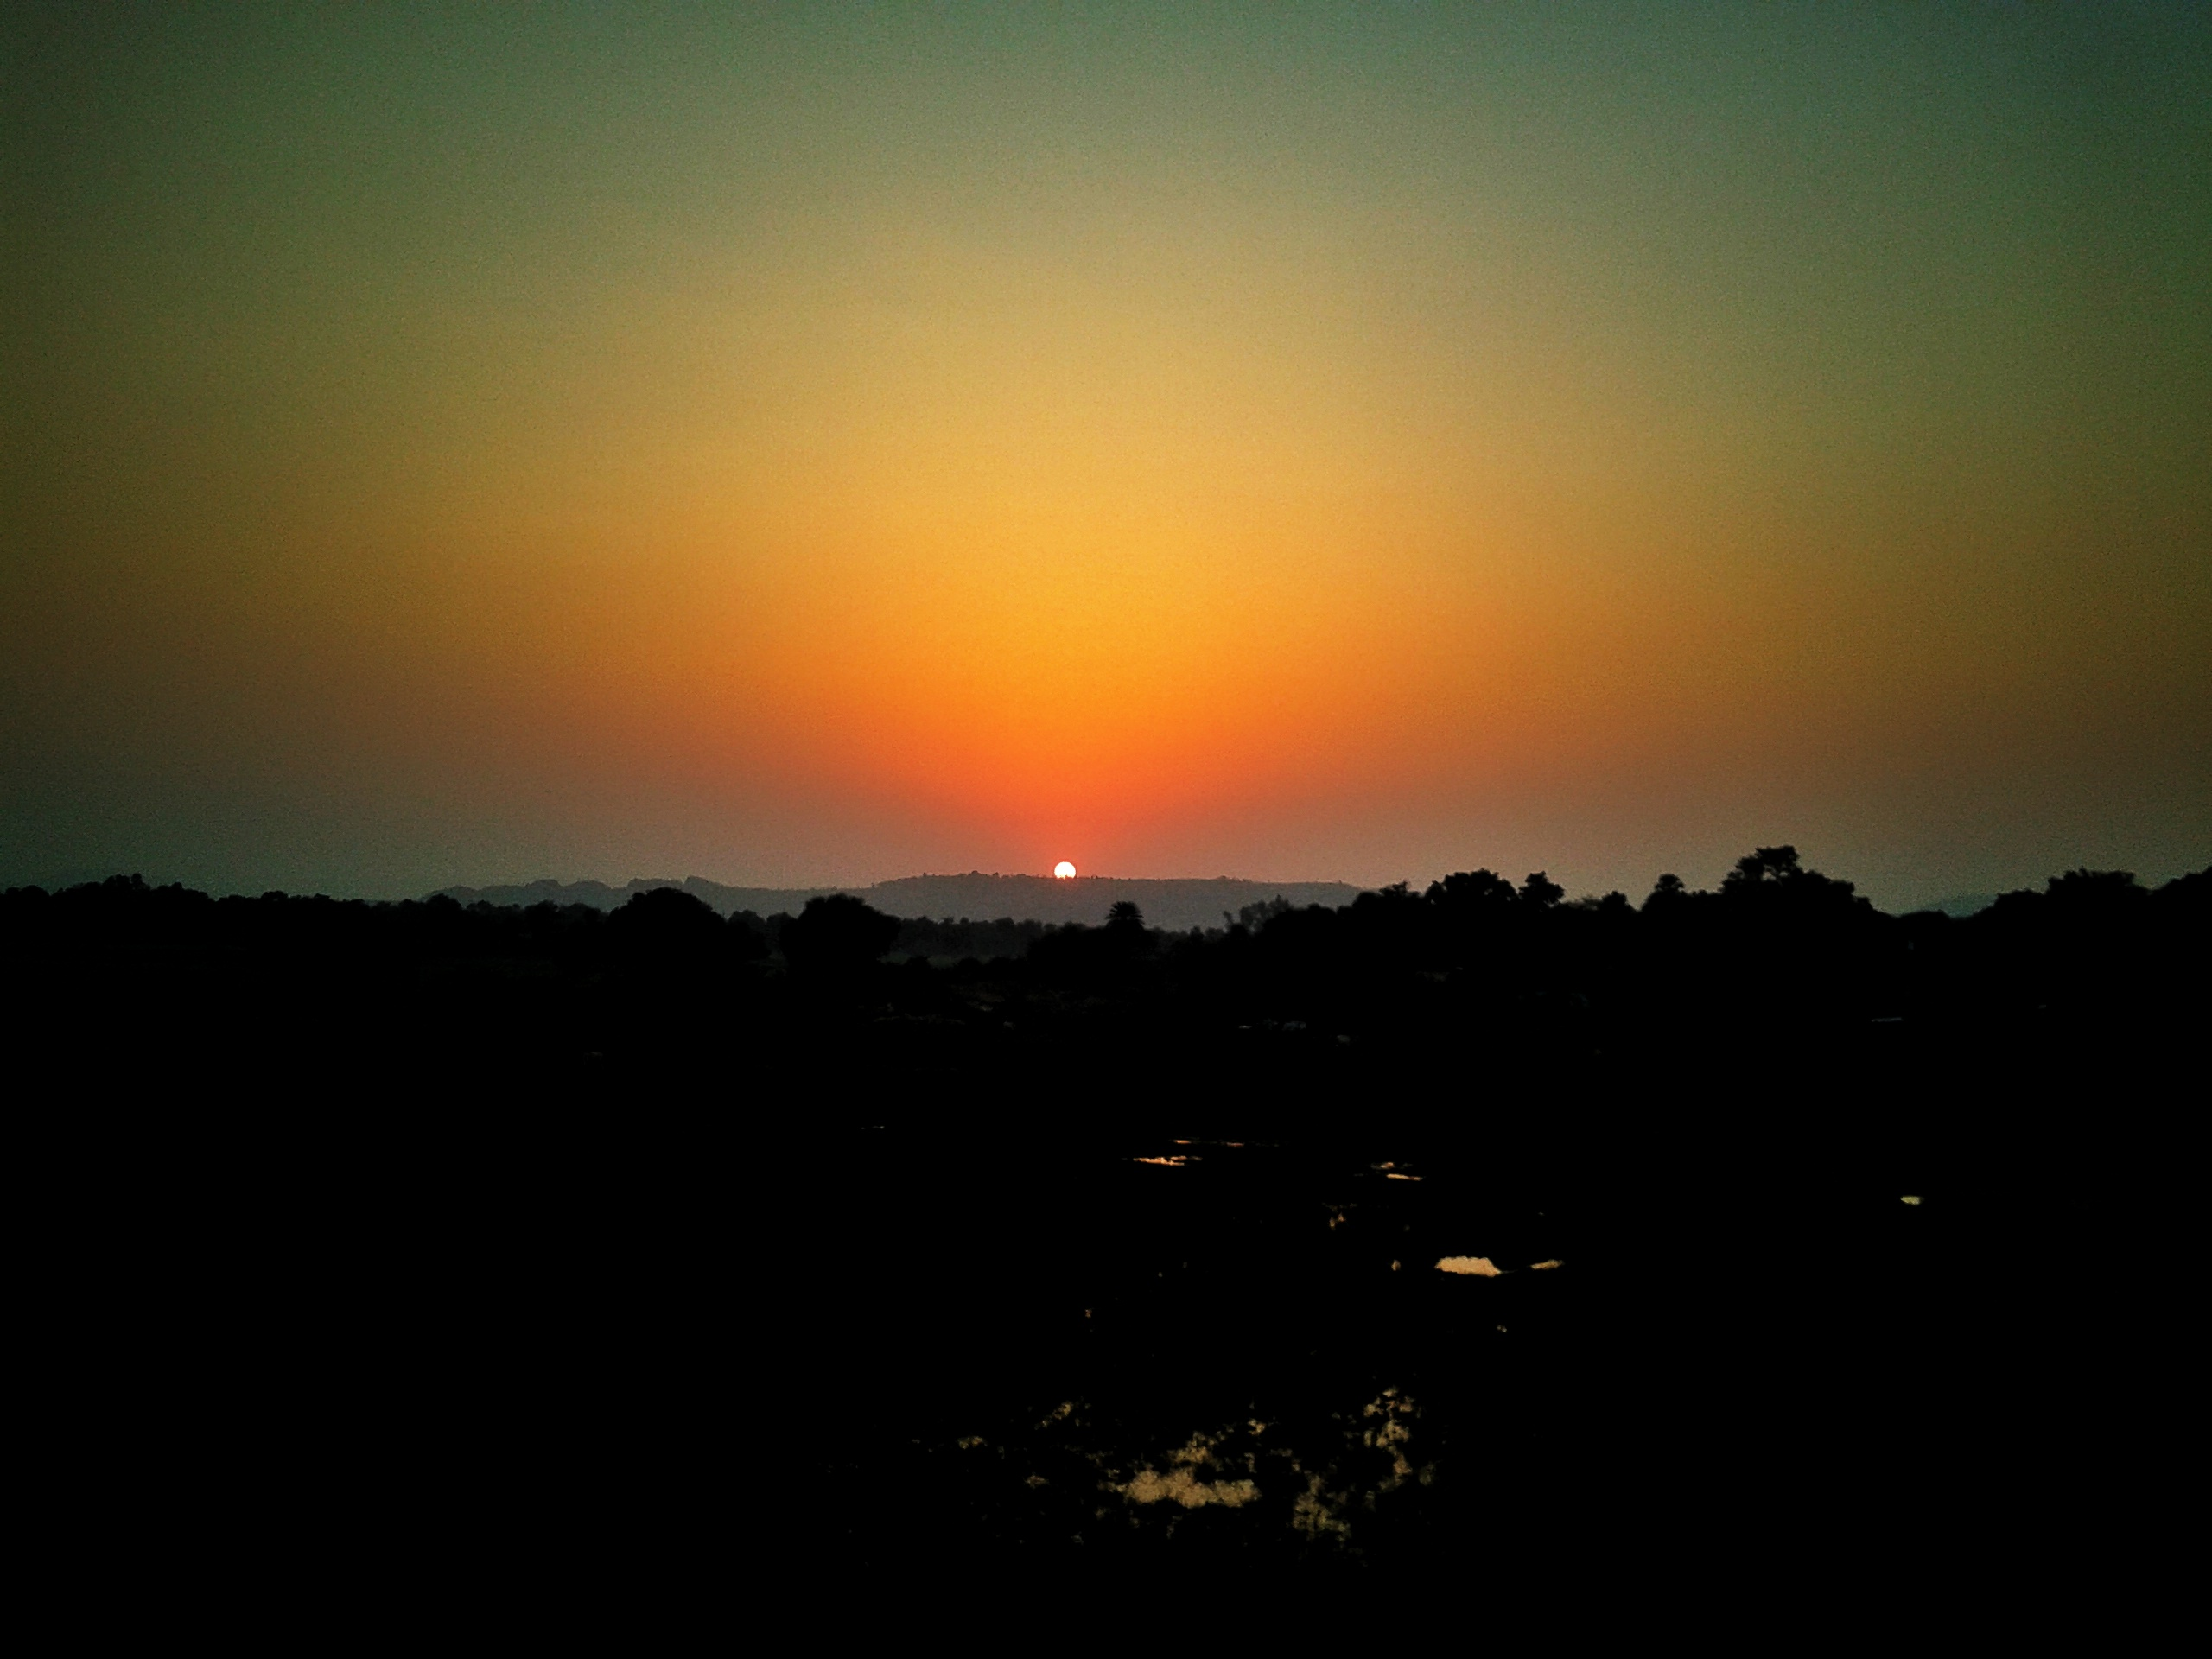 Sunset View from Far Away